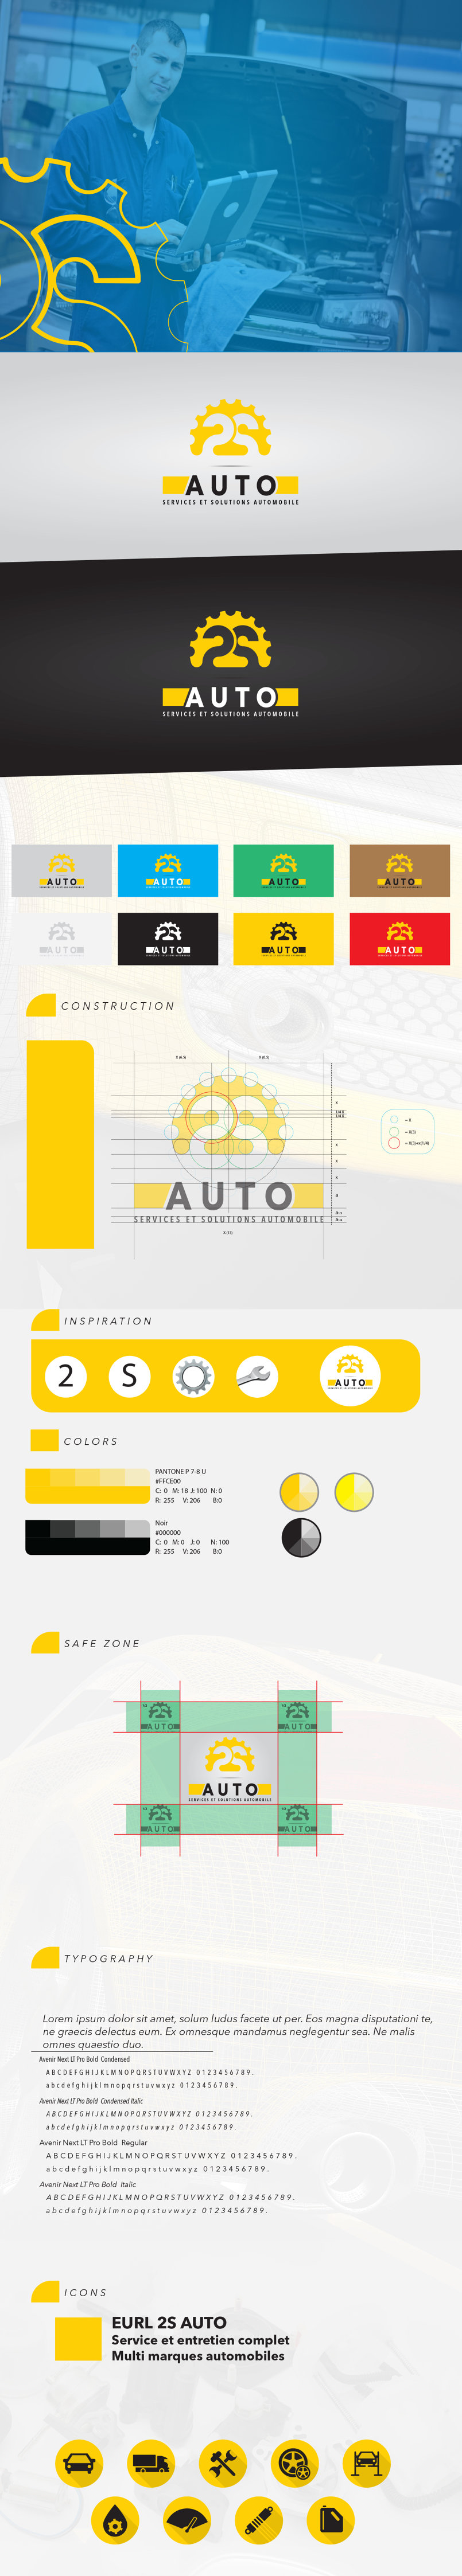 2s Auto Logo And Guidelines By Houssem Bousri Houssembousri108211